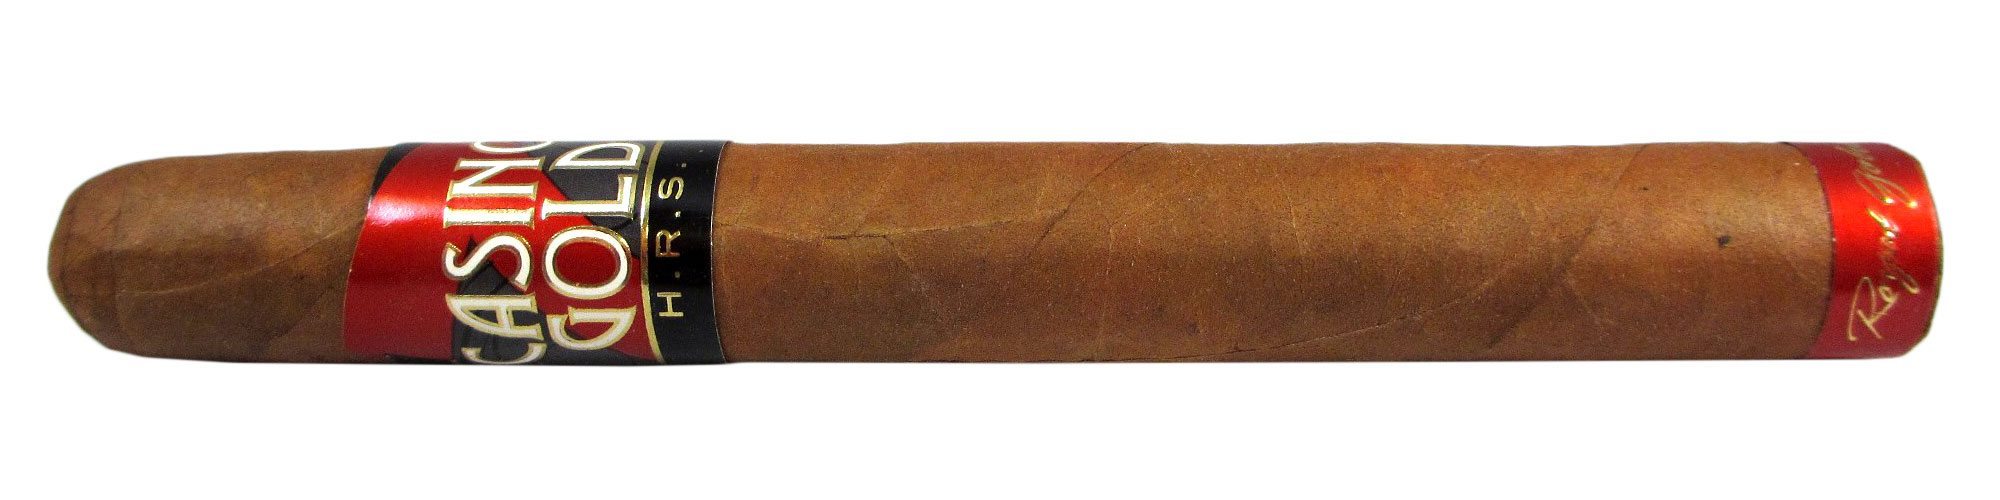 Blind Cigar Review – Revisited: Royal Gold | Casino Gold HRS King